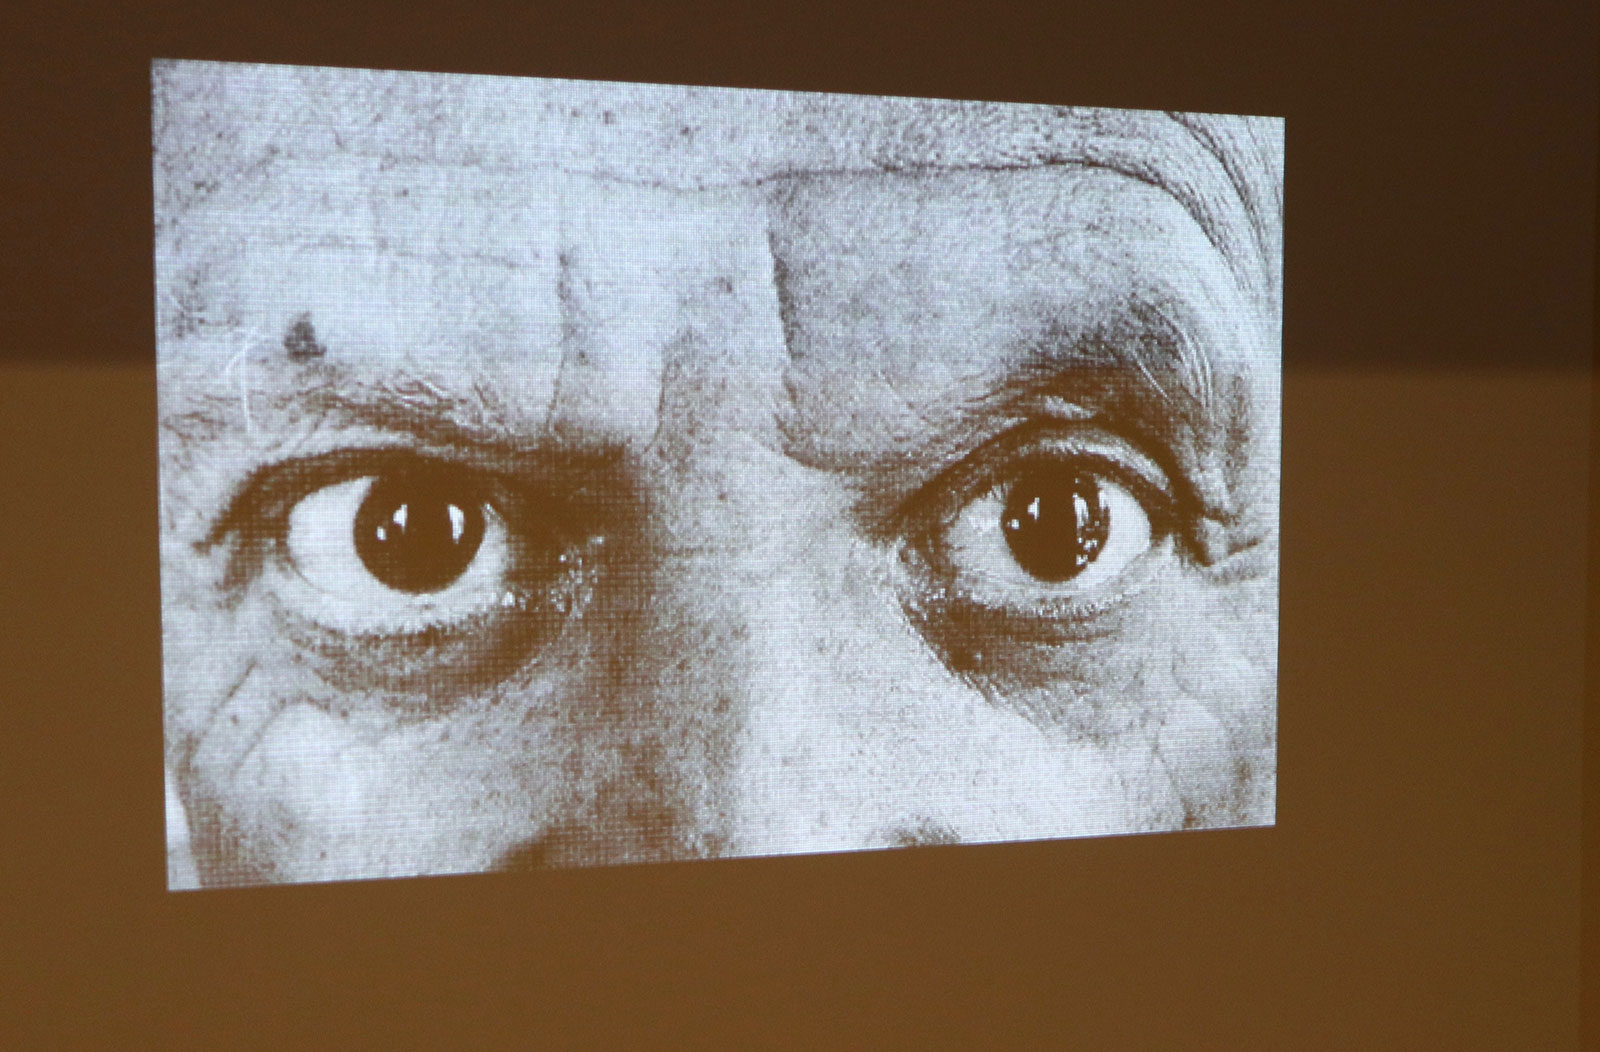 Picasso-eyes picasso-and-the-havoc-he-caused | blog - Cecilie's PenAndWok.com